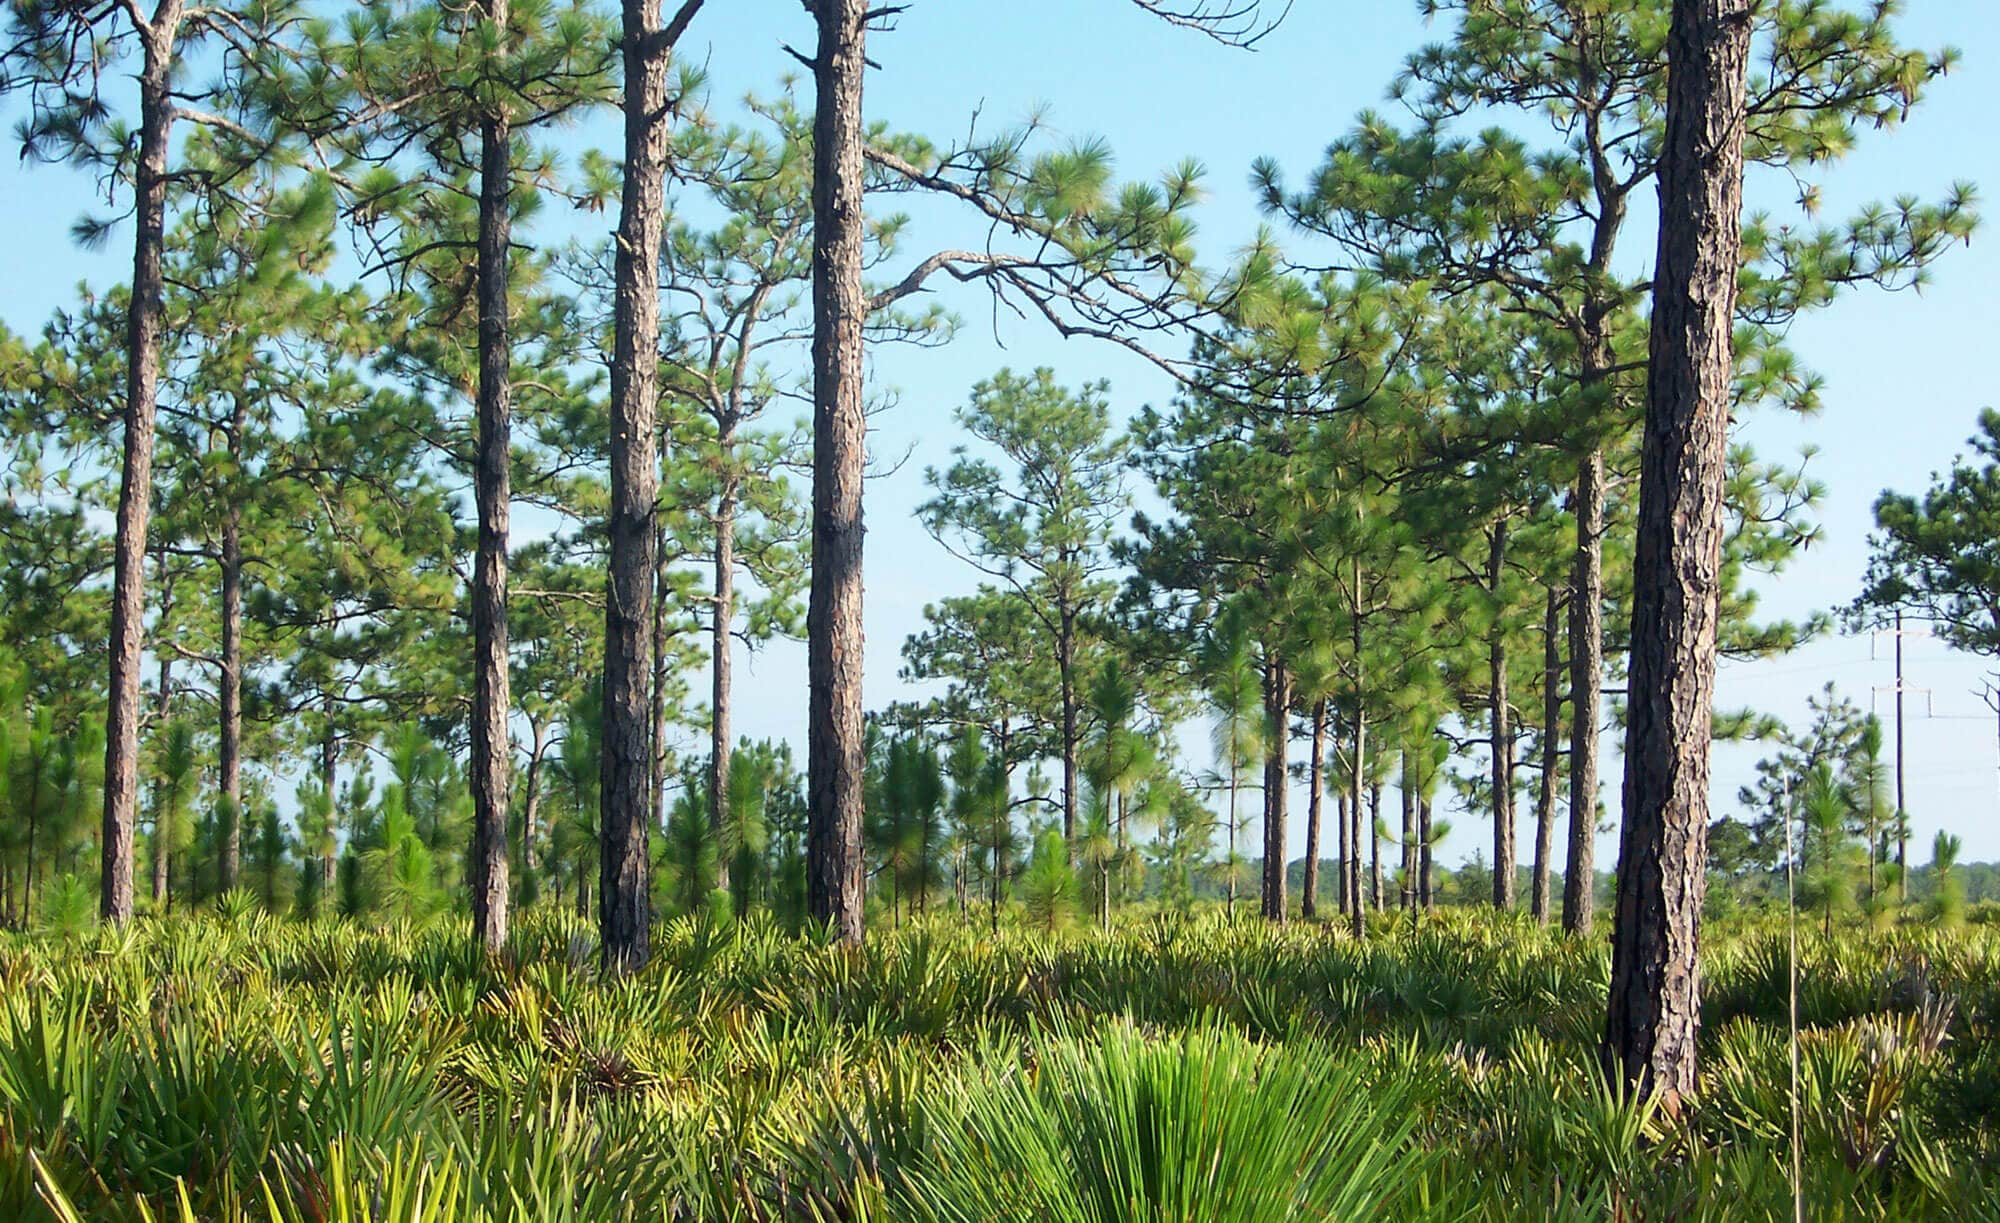 Trees and scrub along hiking trail at SUMICA in Lake Wales, FL